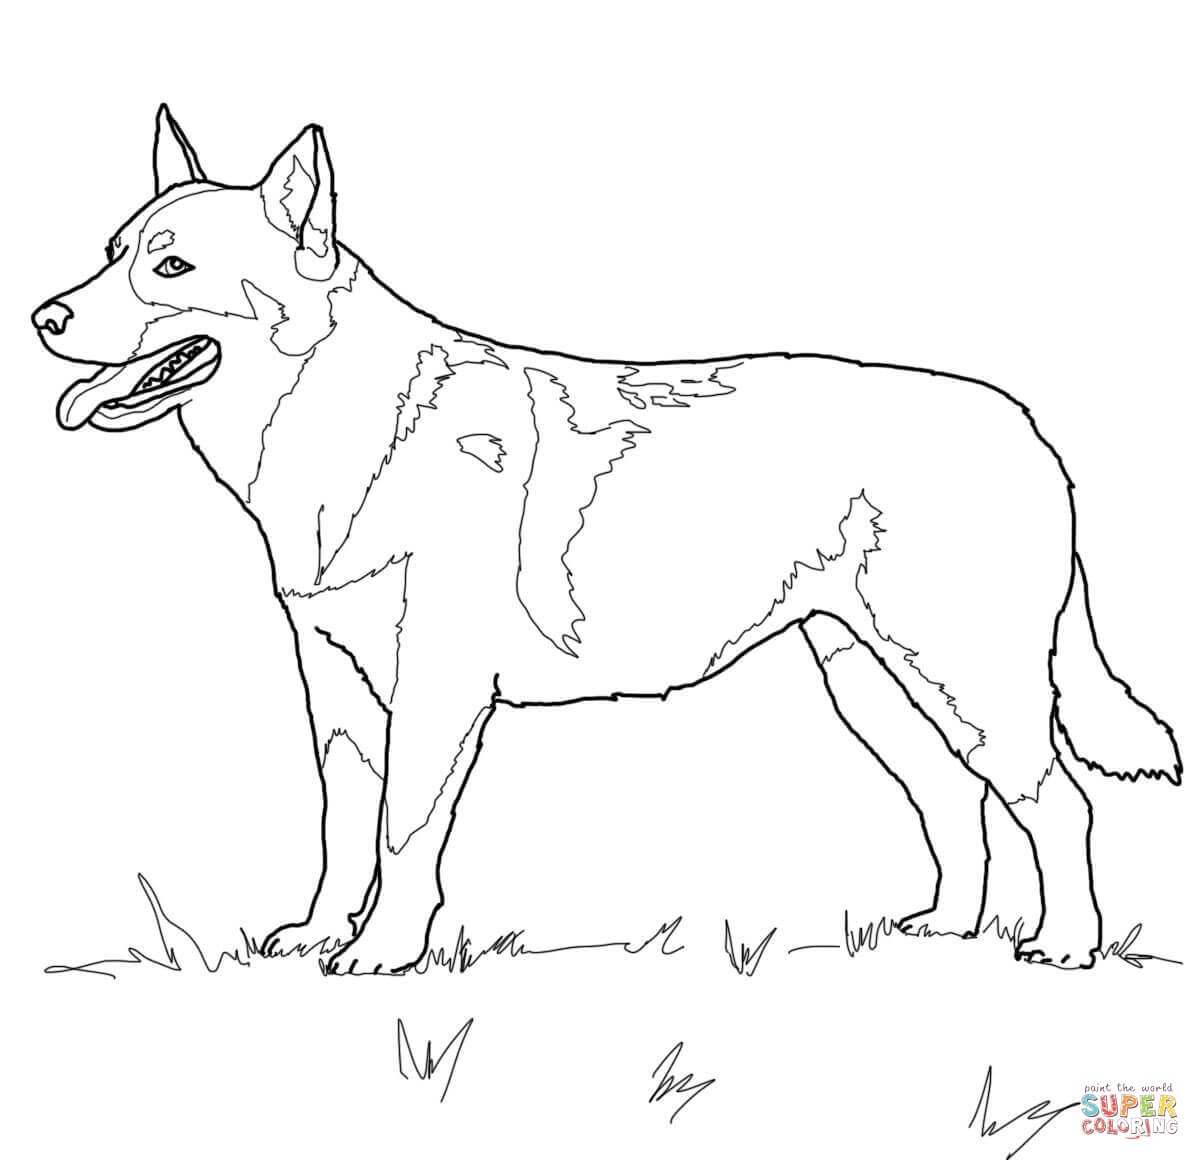 Australian Cattle Dog Coloring Page | Free Printable Coloring Pages - Free Printable Dog Coloring Pages